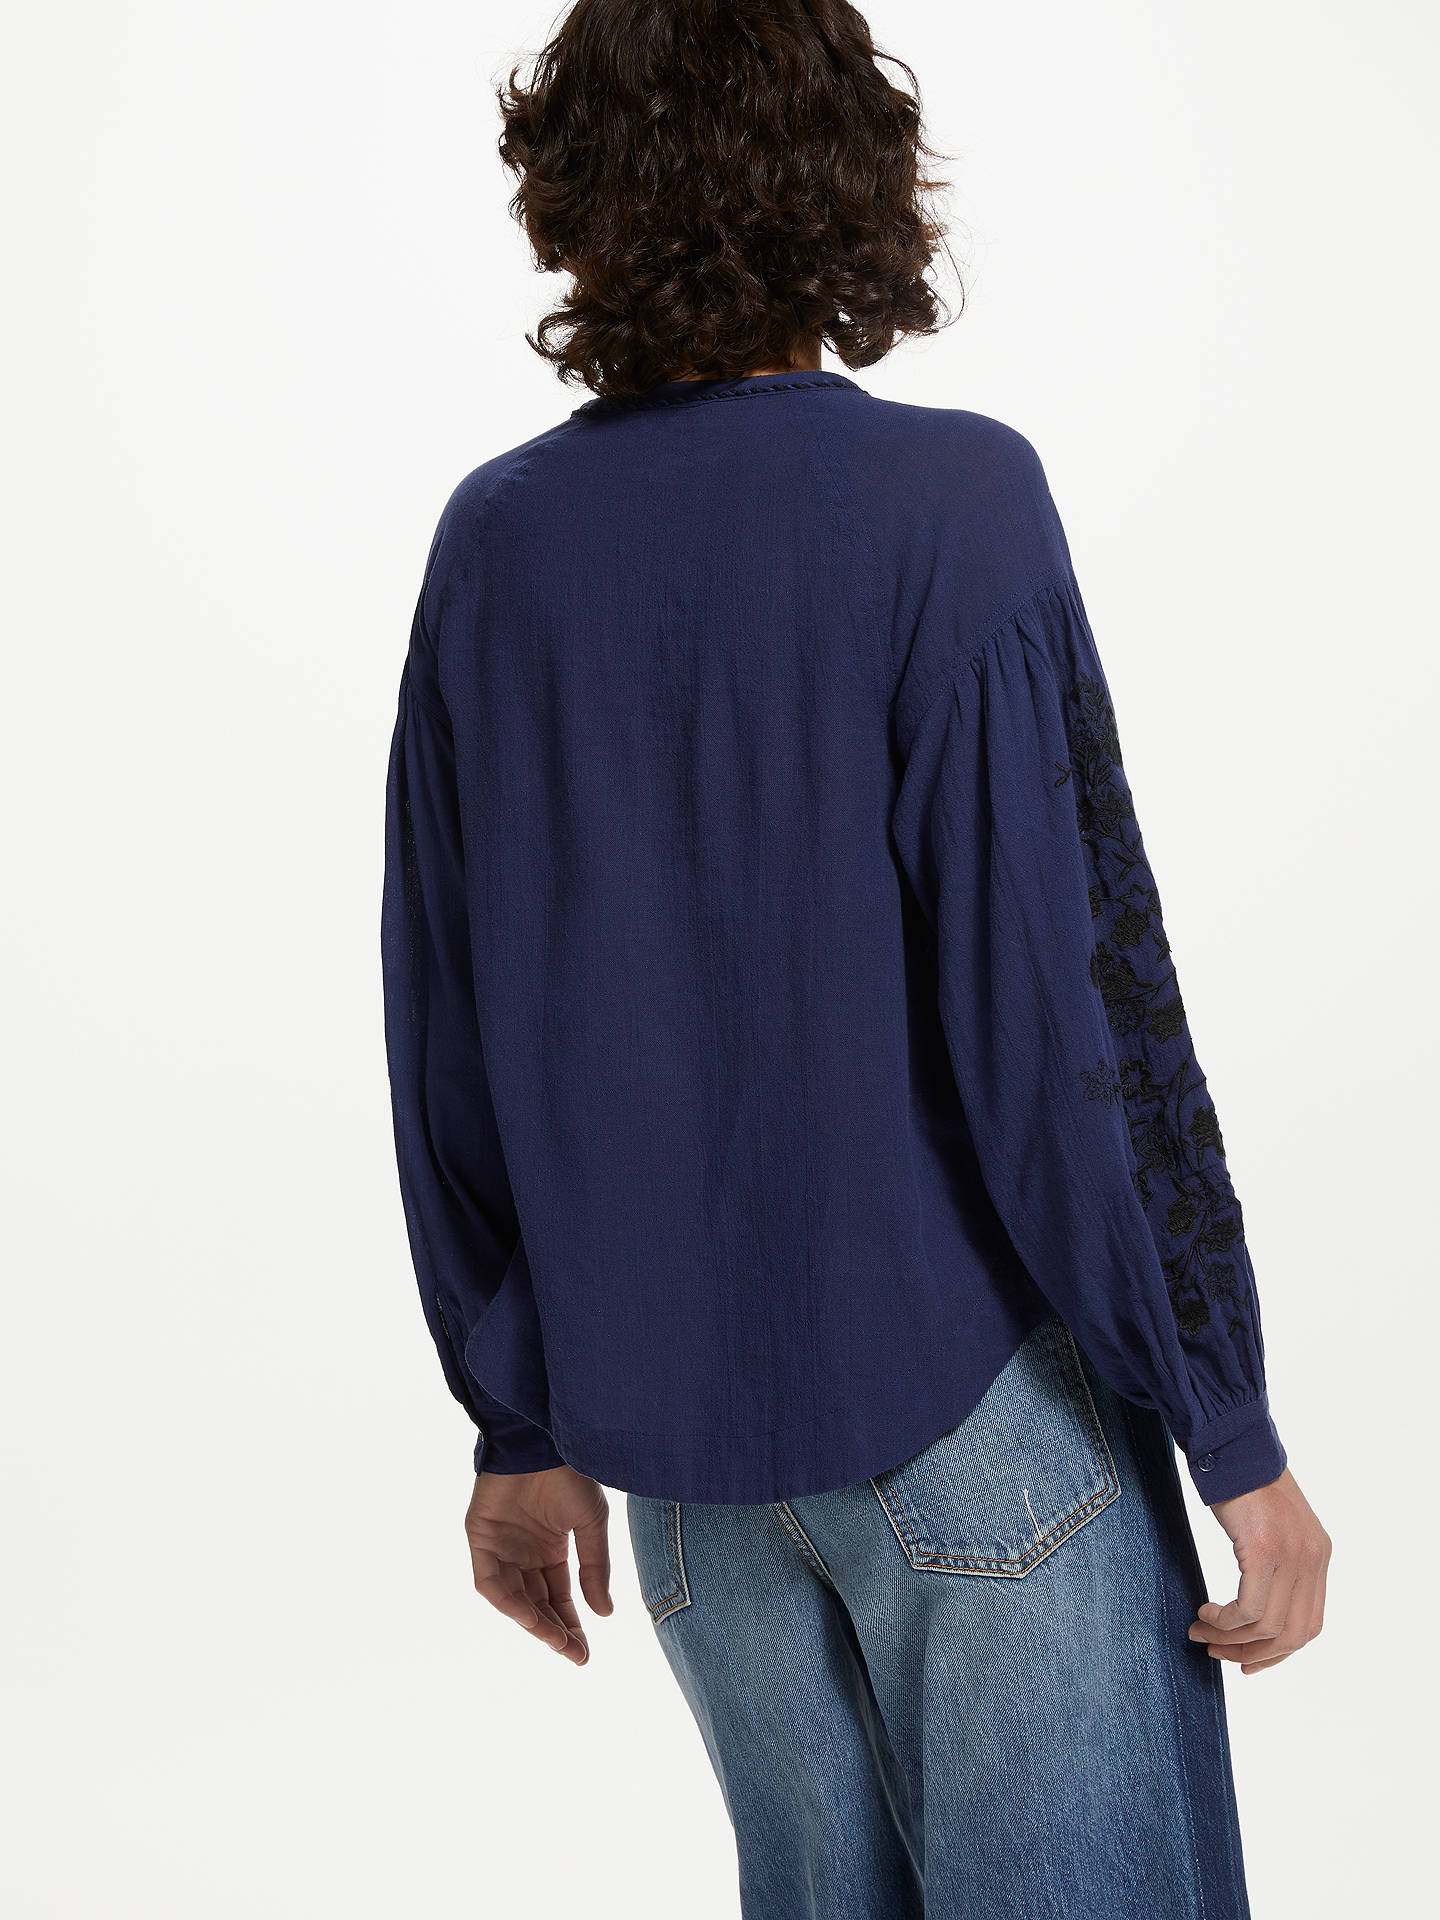 BuyAND/OR Embroidered Blouson Sleeve Blouse, Blue, 8 Online at johnlewis.com